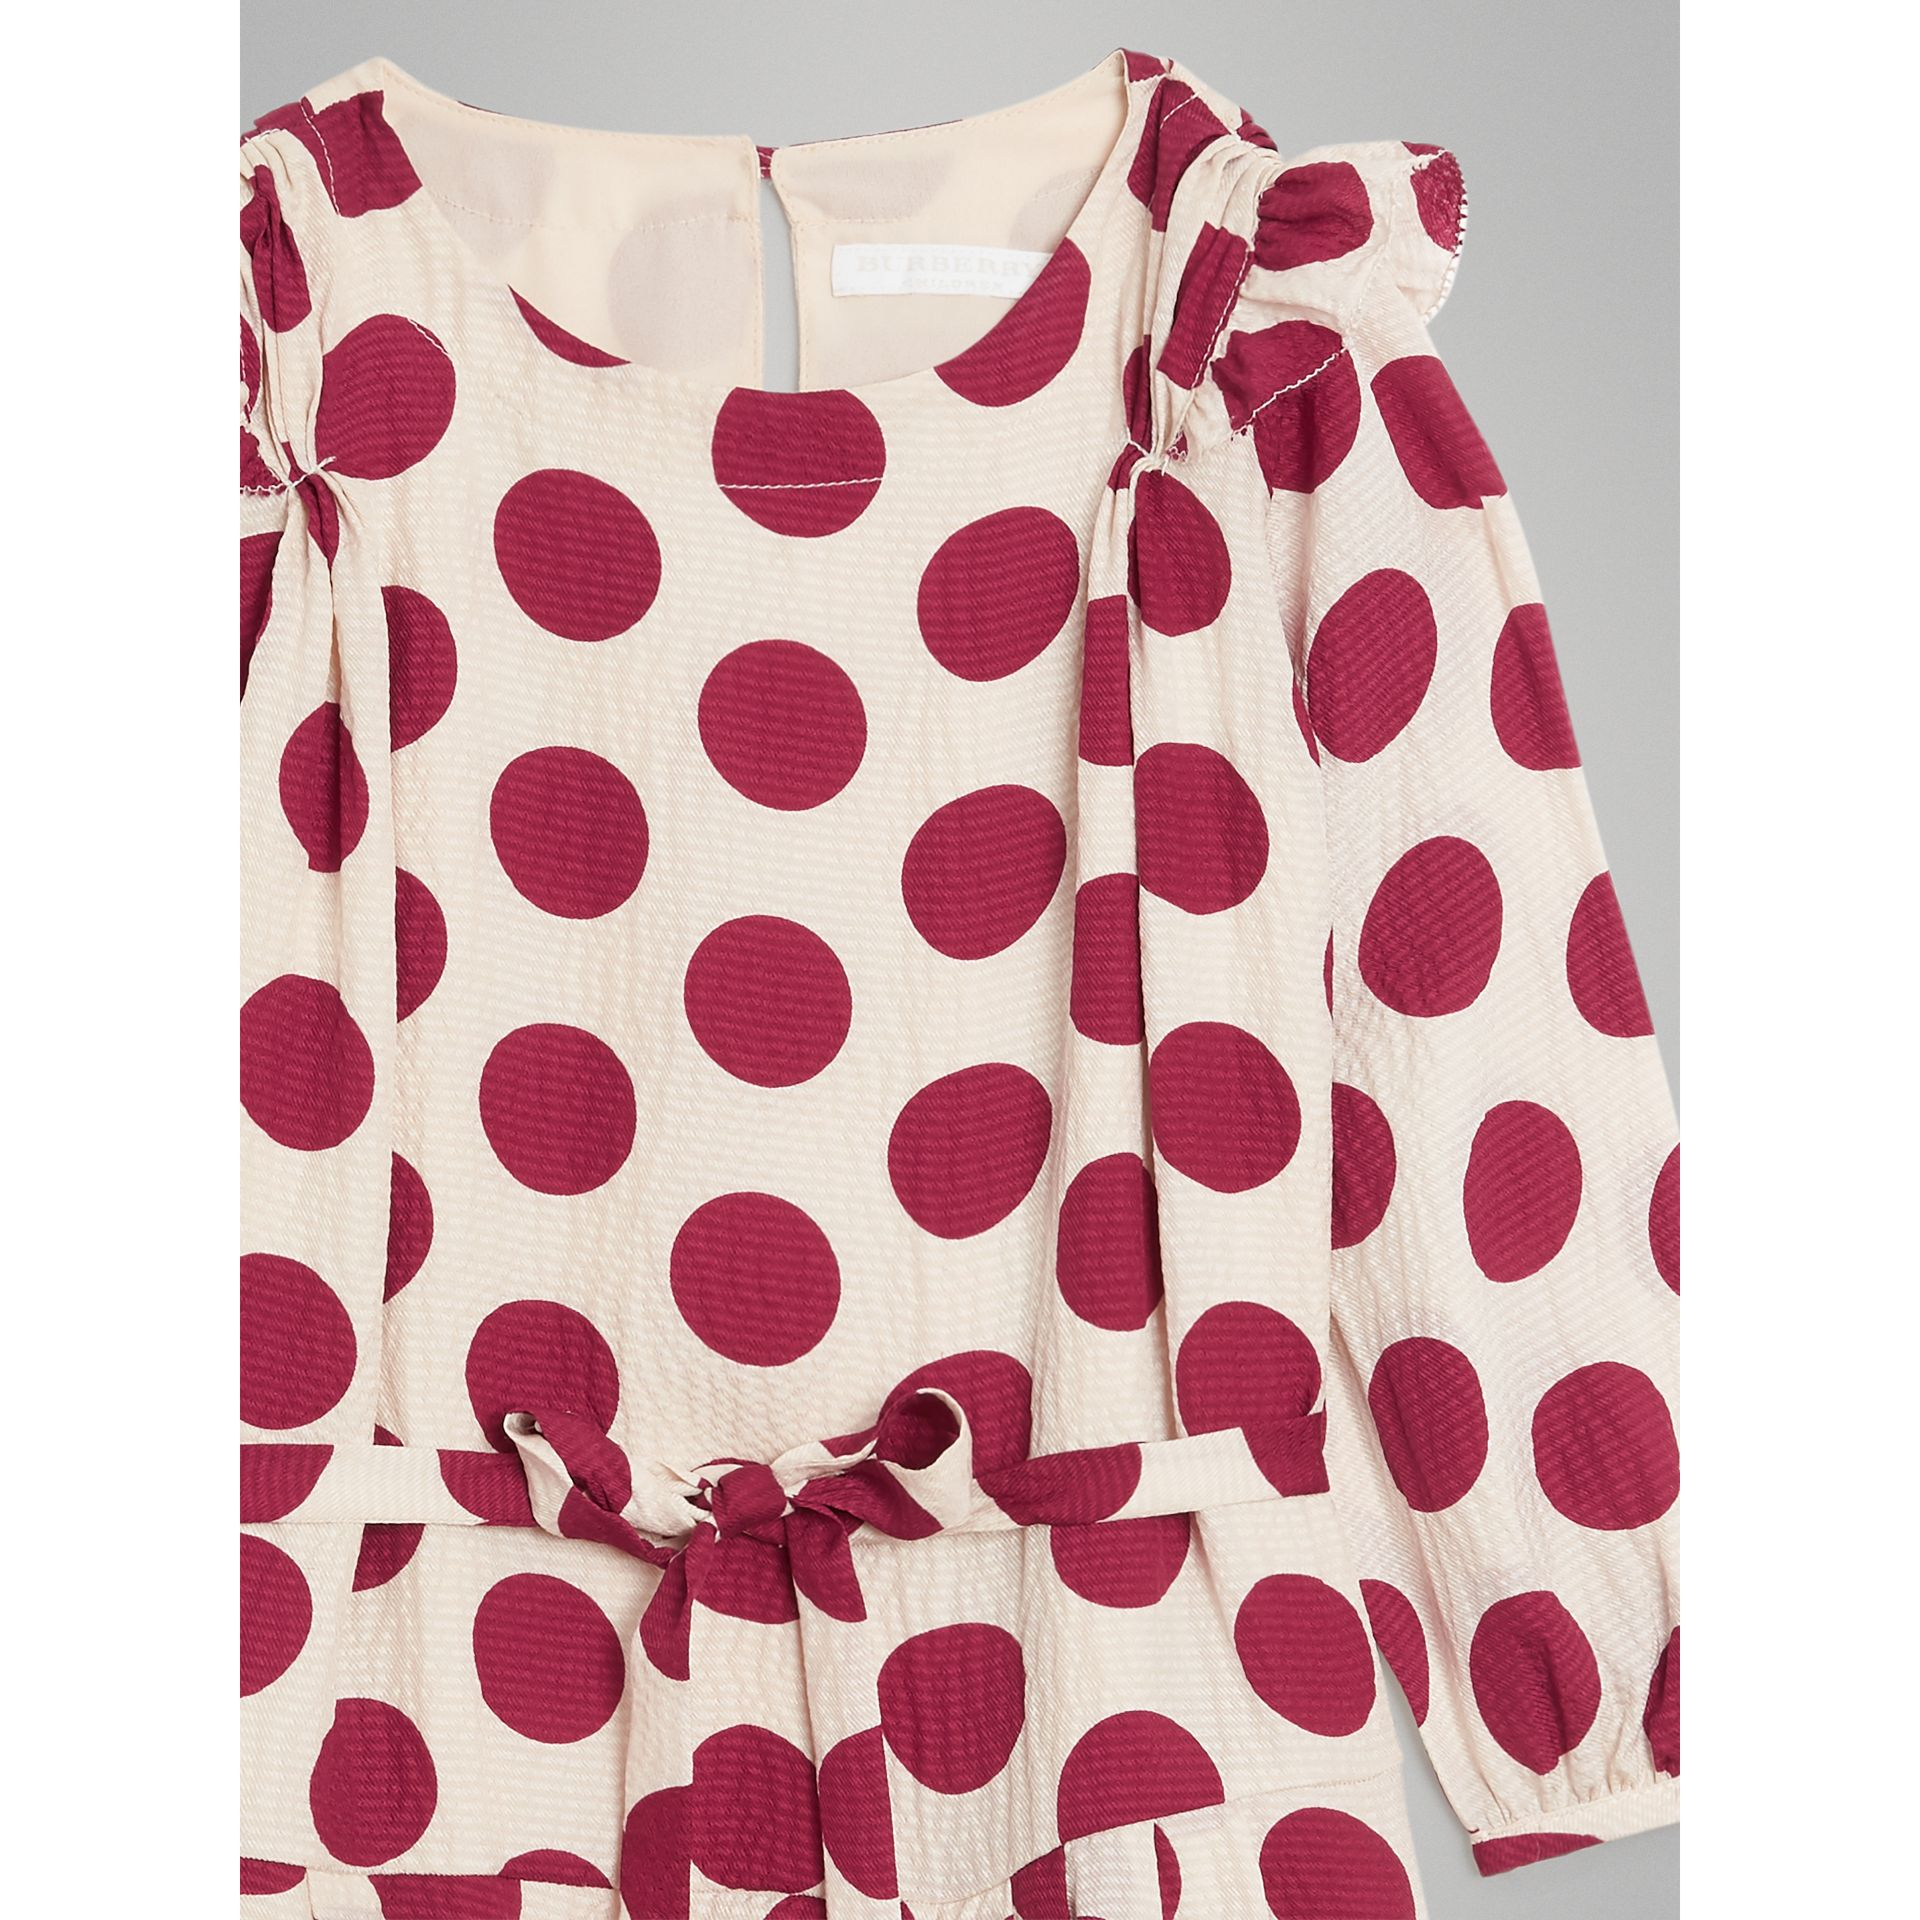 Polka Dot Print Silk Crepe Dress in Windsor Red | Burberry - gallery image 5